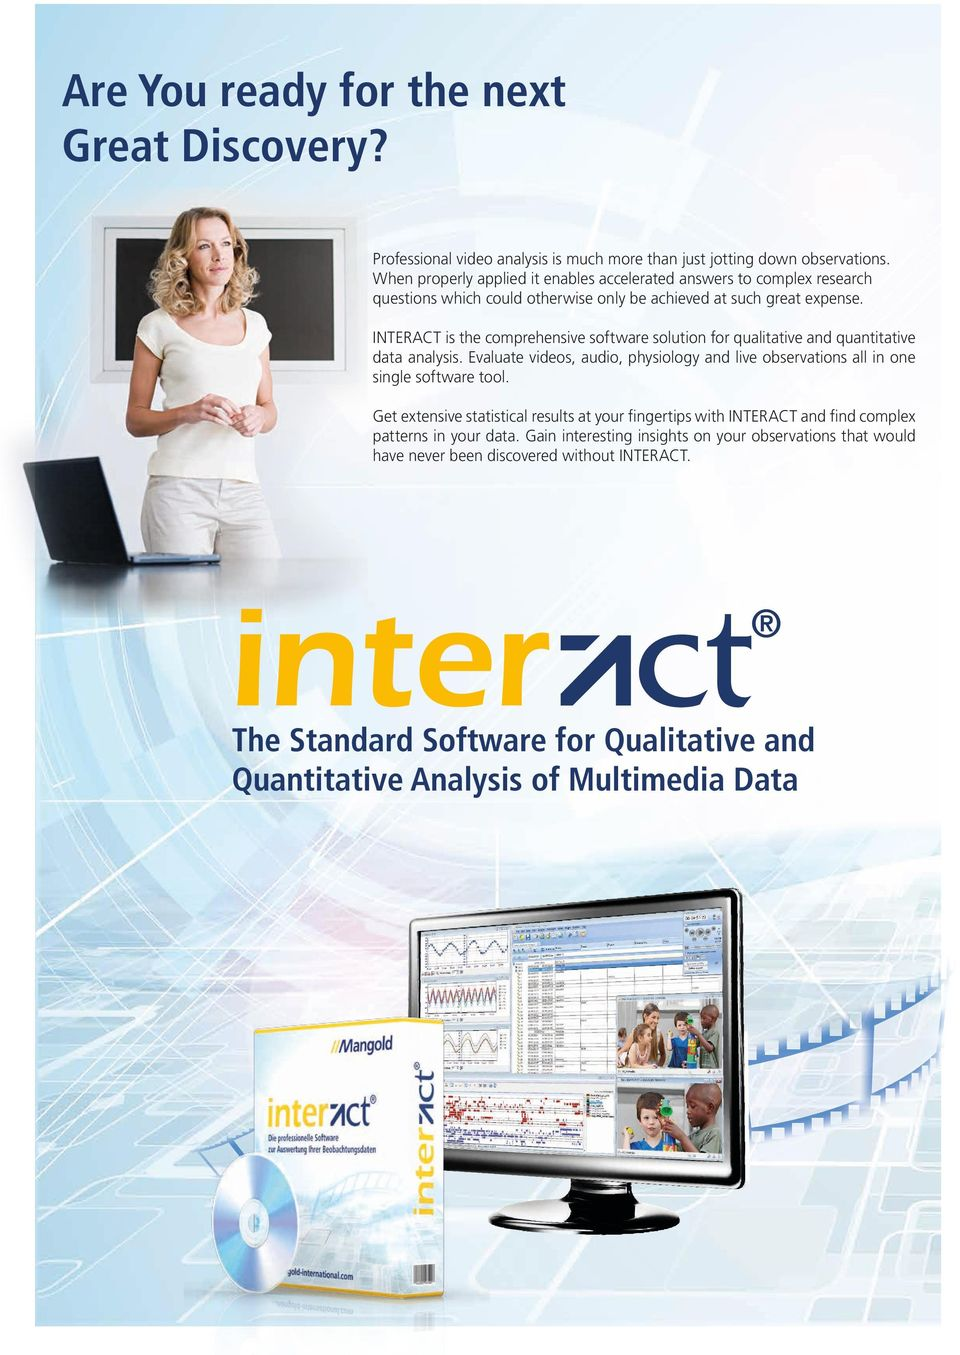 INTERACT is the comprehensive software solution for qualitative and quantitative data analysis. Evaluate videos, audio, physiology and live observations all in one single software tool.